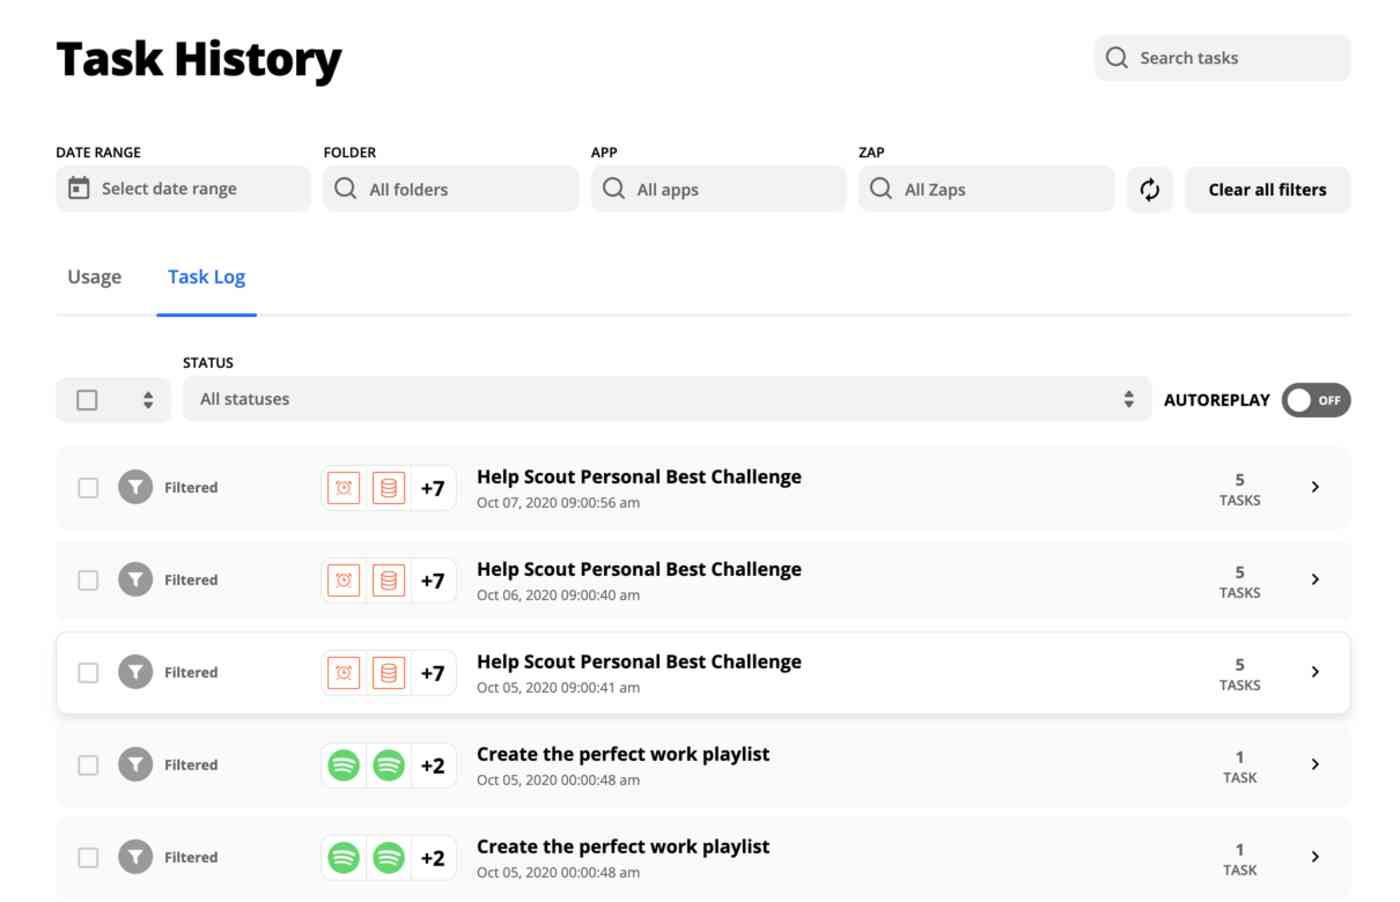 The Task History page